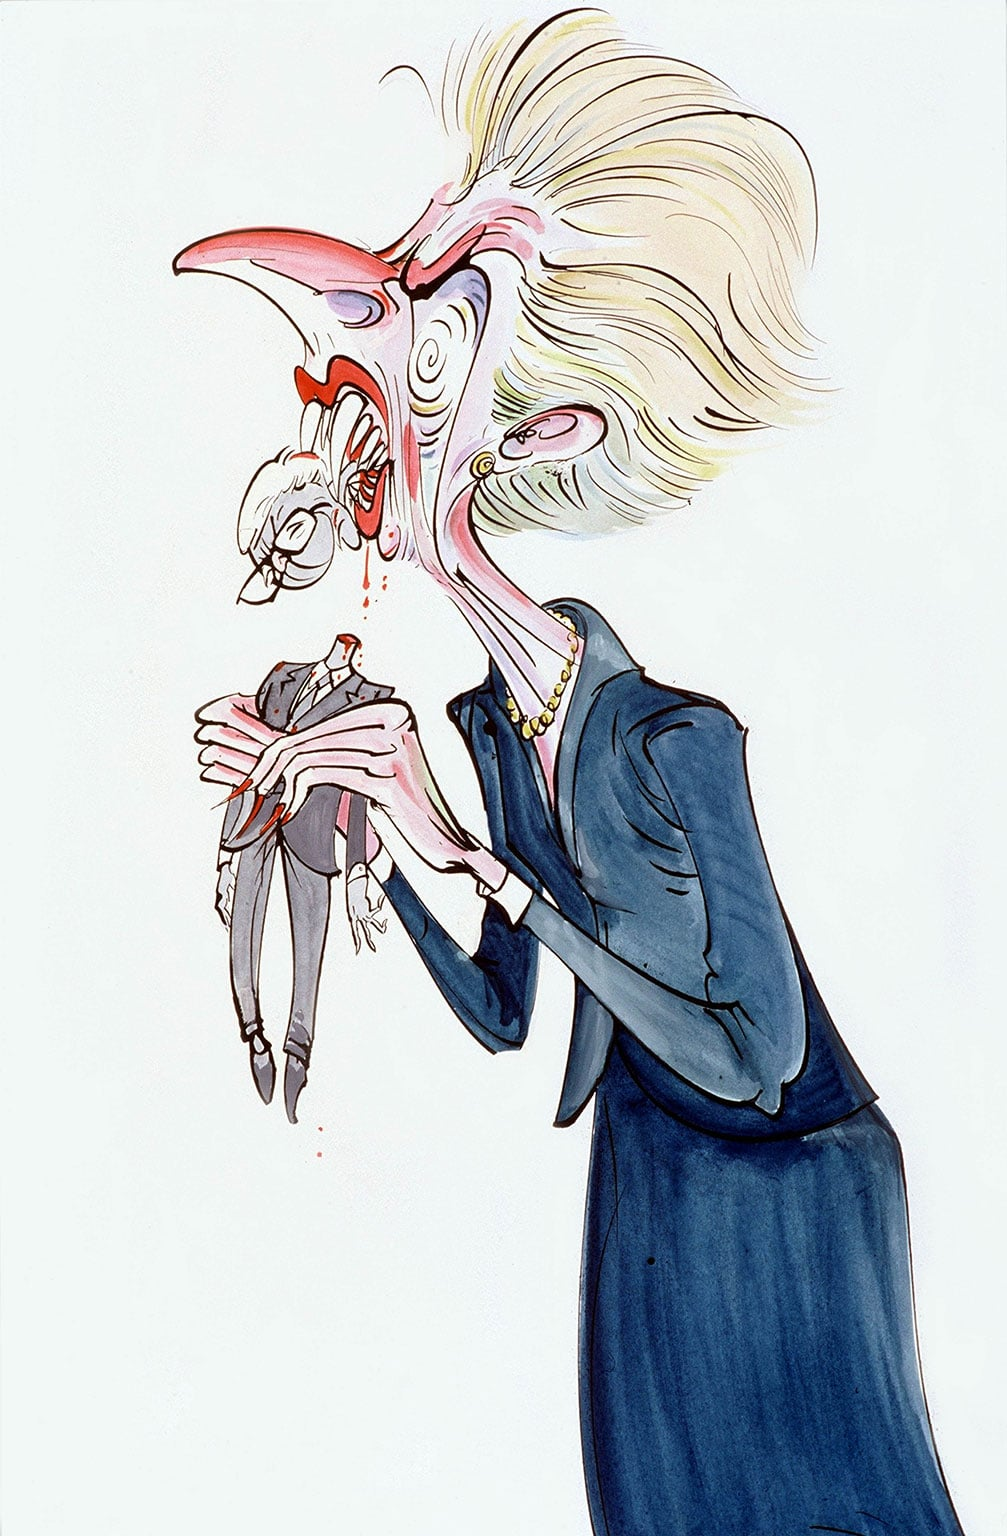 5. Milk Snatcher: The Margaret Thatcher Drawings, The Bowes Museum, free with National Art Pass - Gerald Scarfe, Thatcher eating Major © The artist